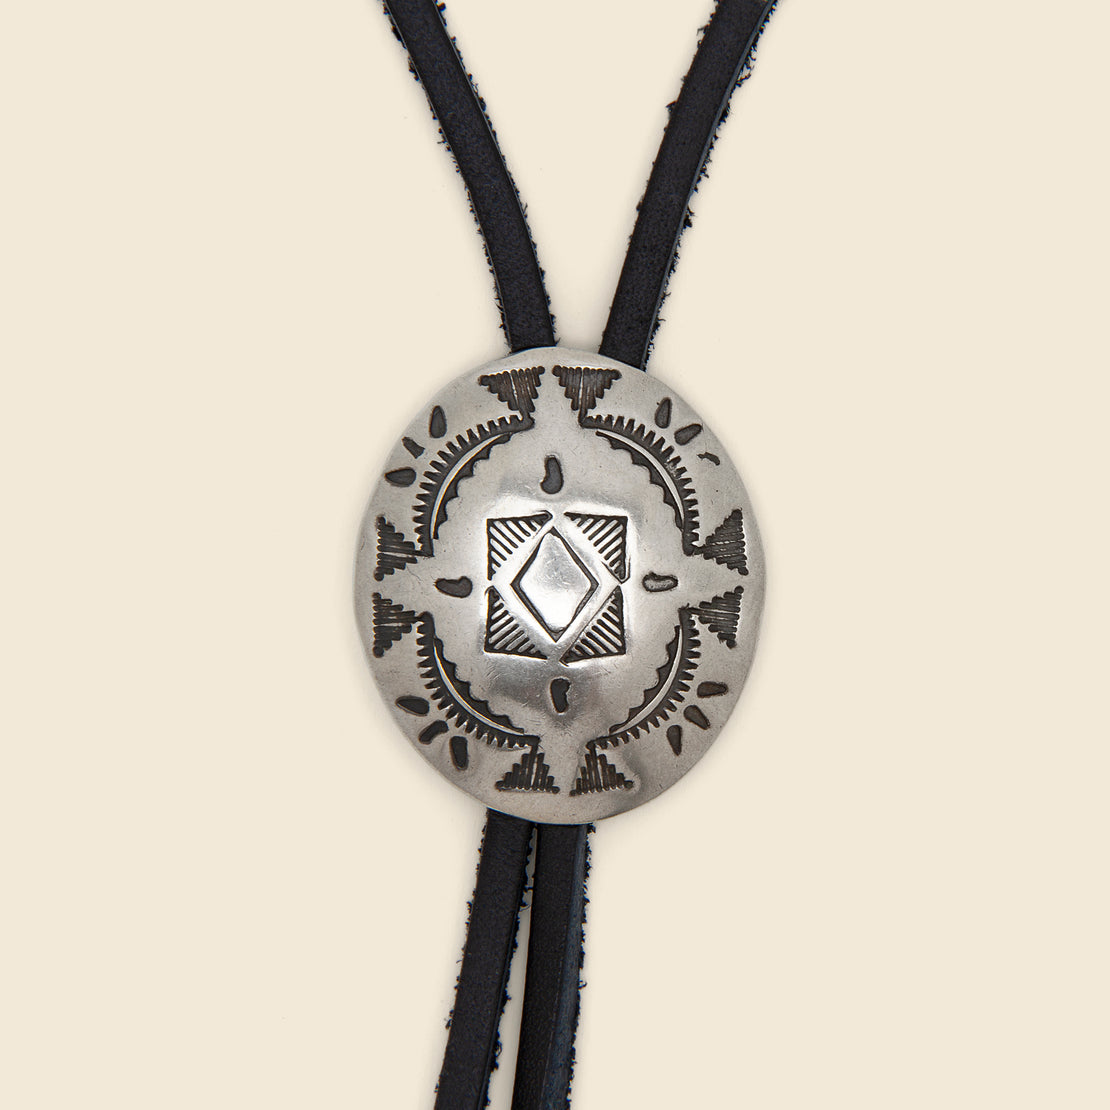 Leather Bolo Tie - Nickel Silver/Leather